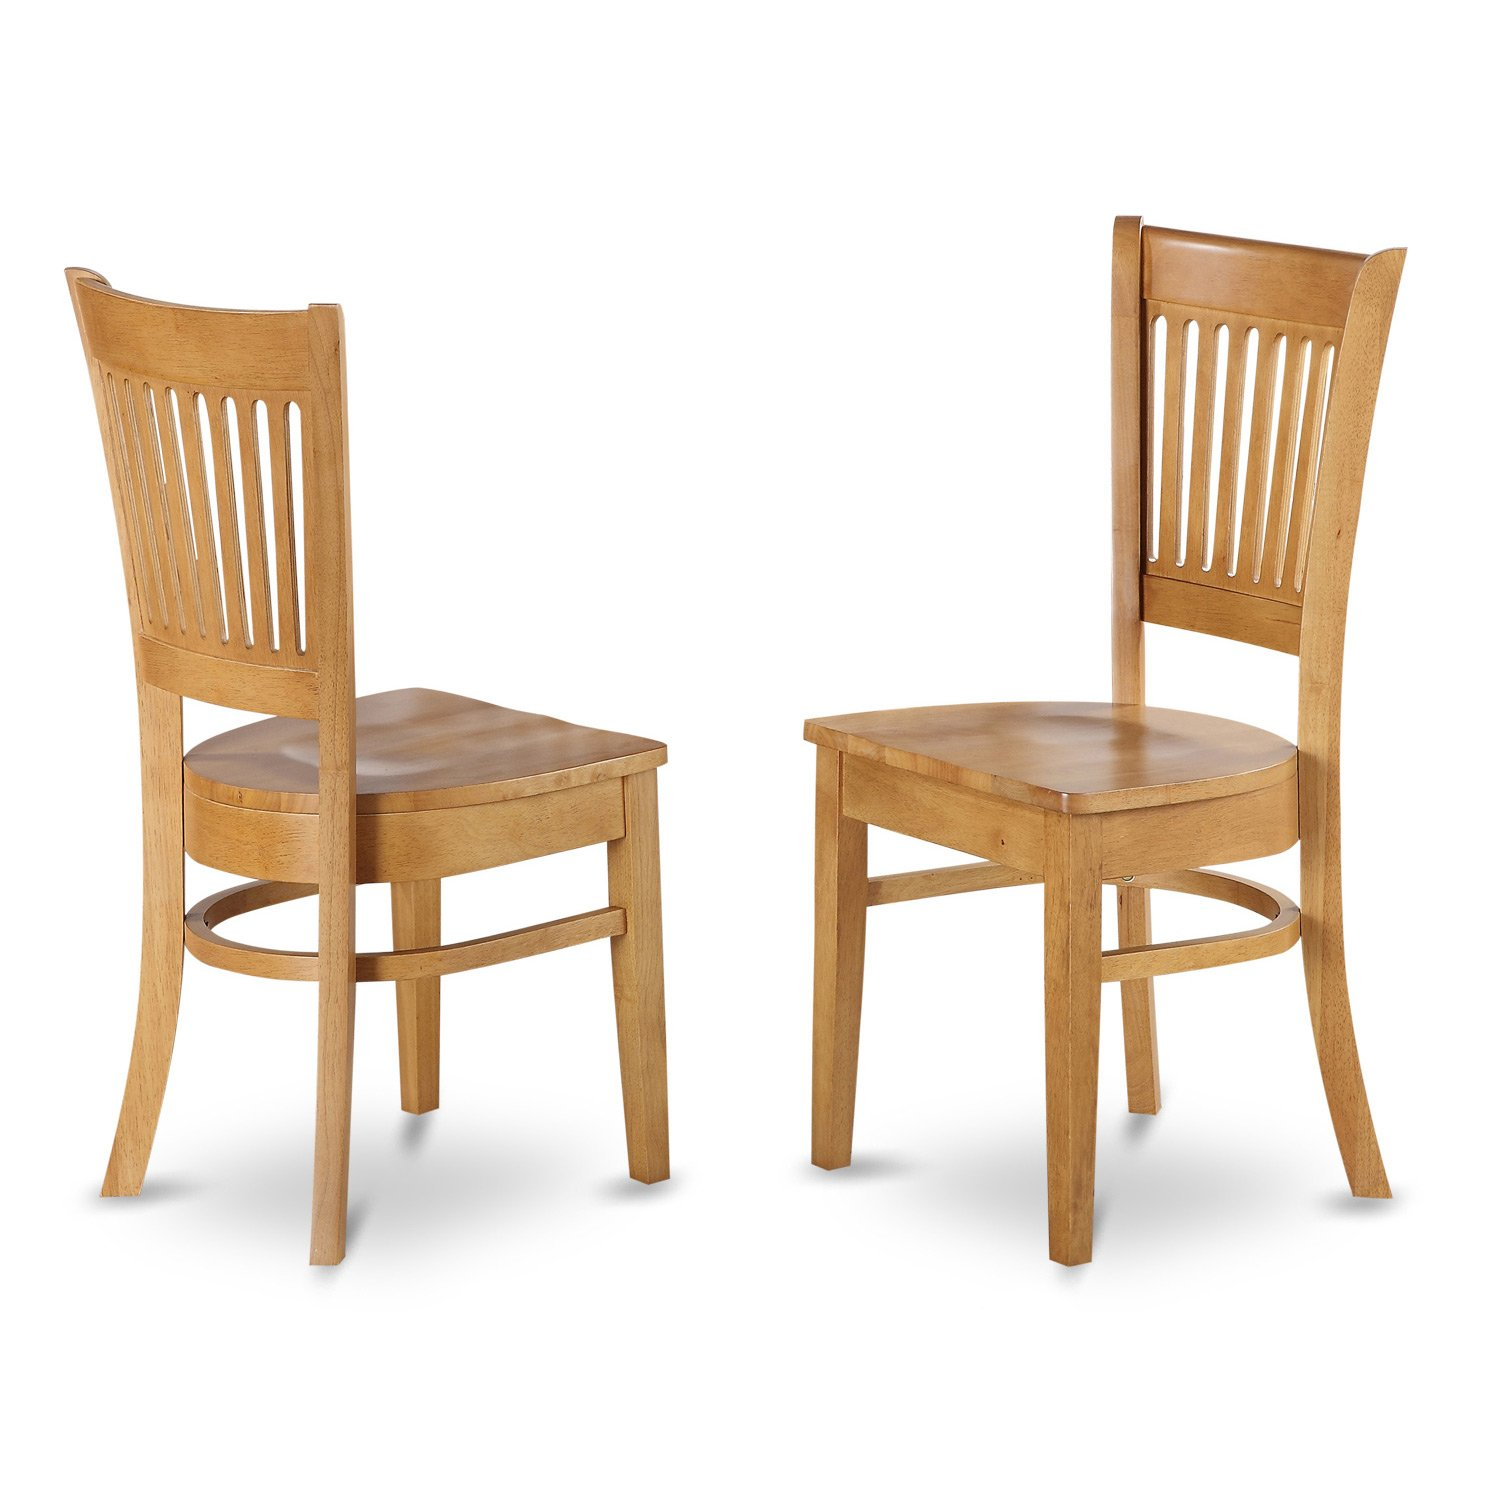 East West Furniture VAC-OAK-W Wood Seat Kitchen/Dining Chairs, Oak Finish, Set of 2